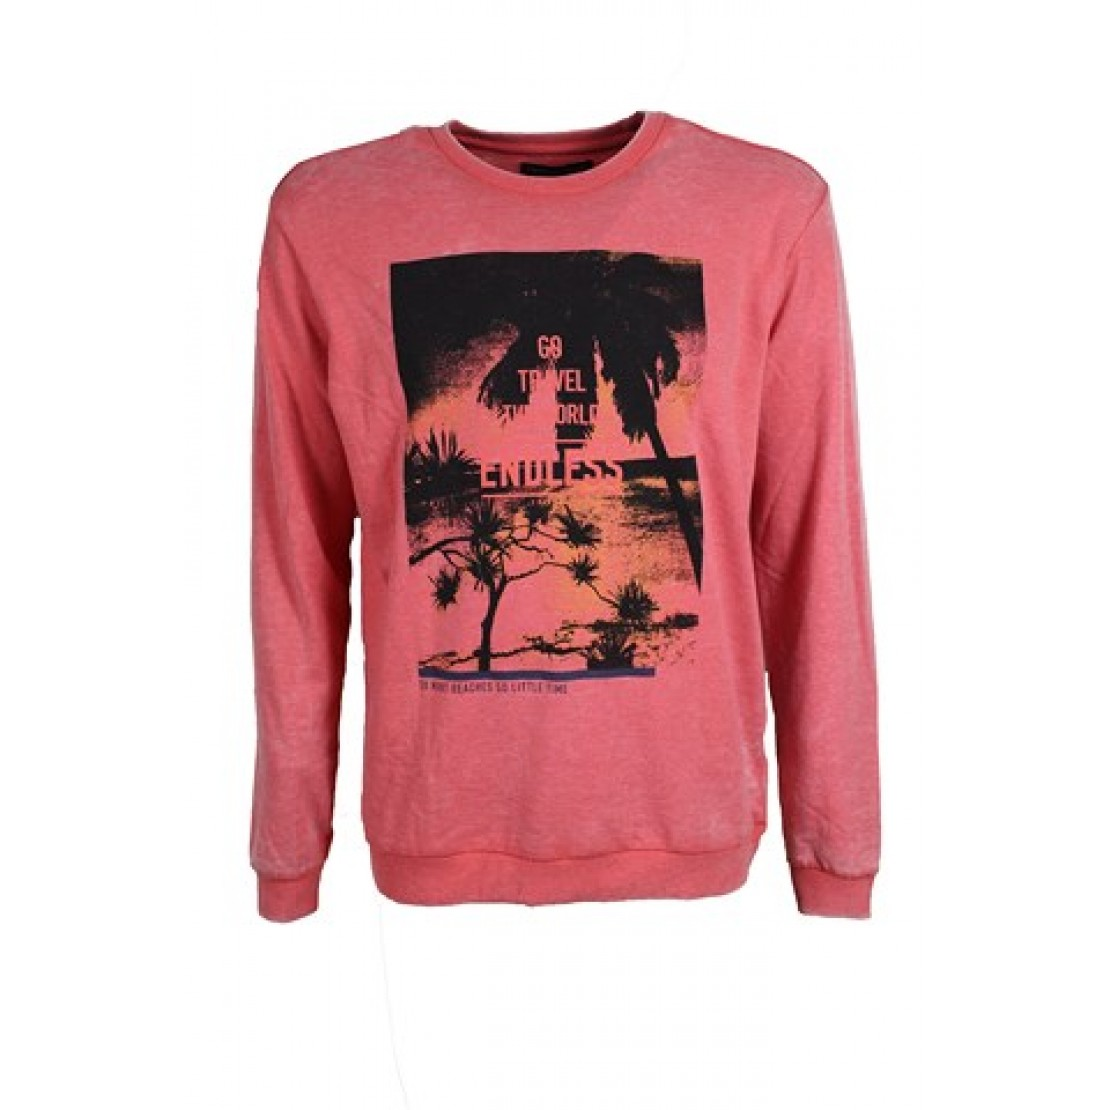 Sweater 2378952 Endless